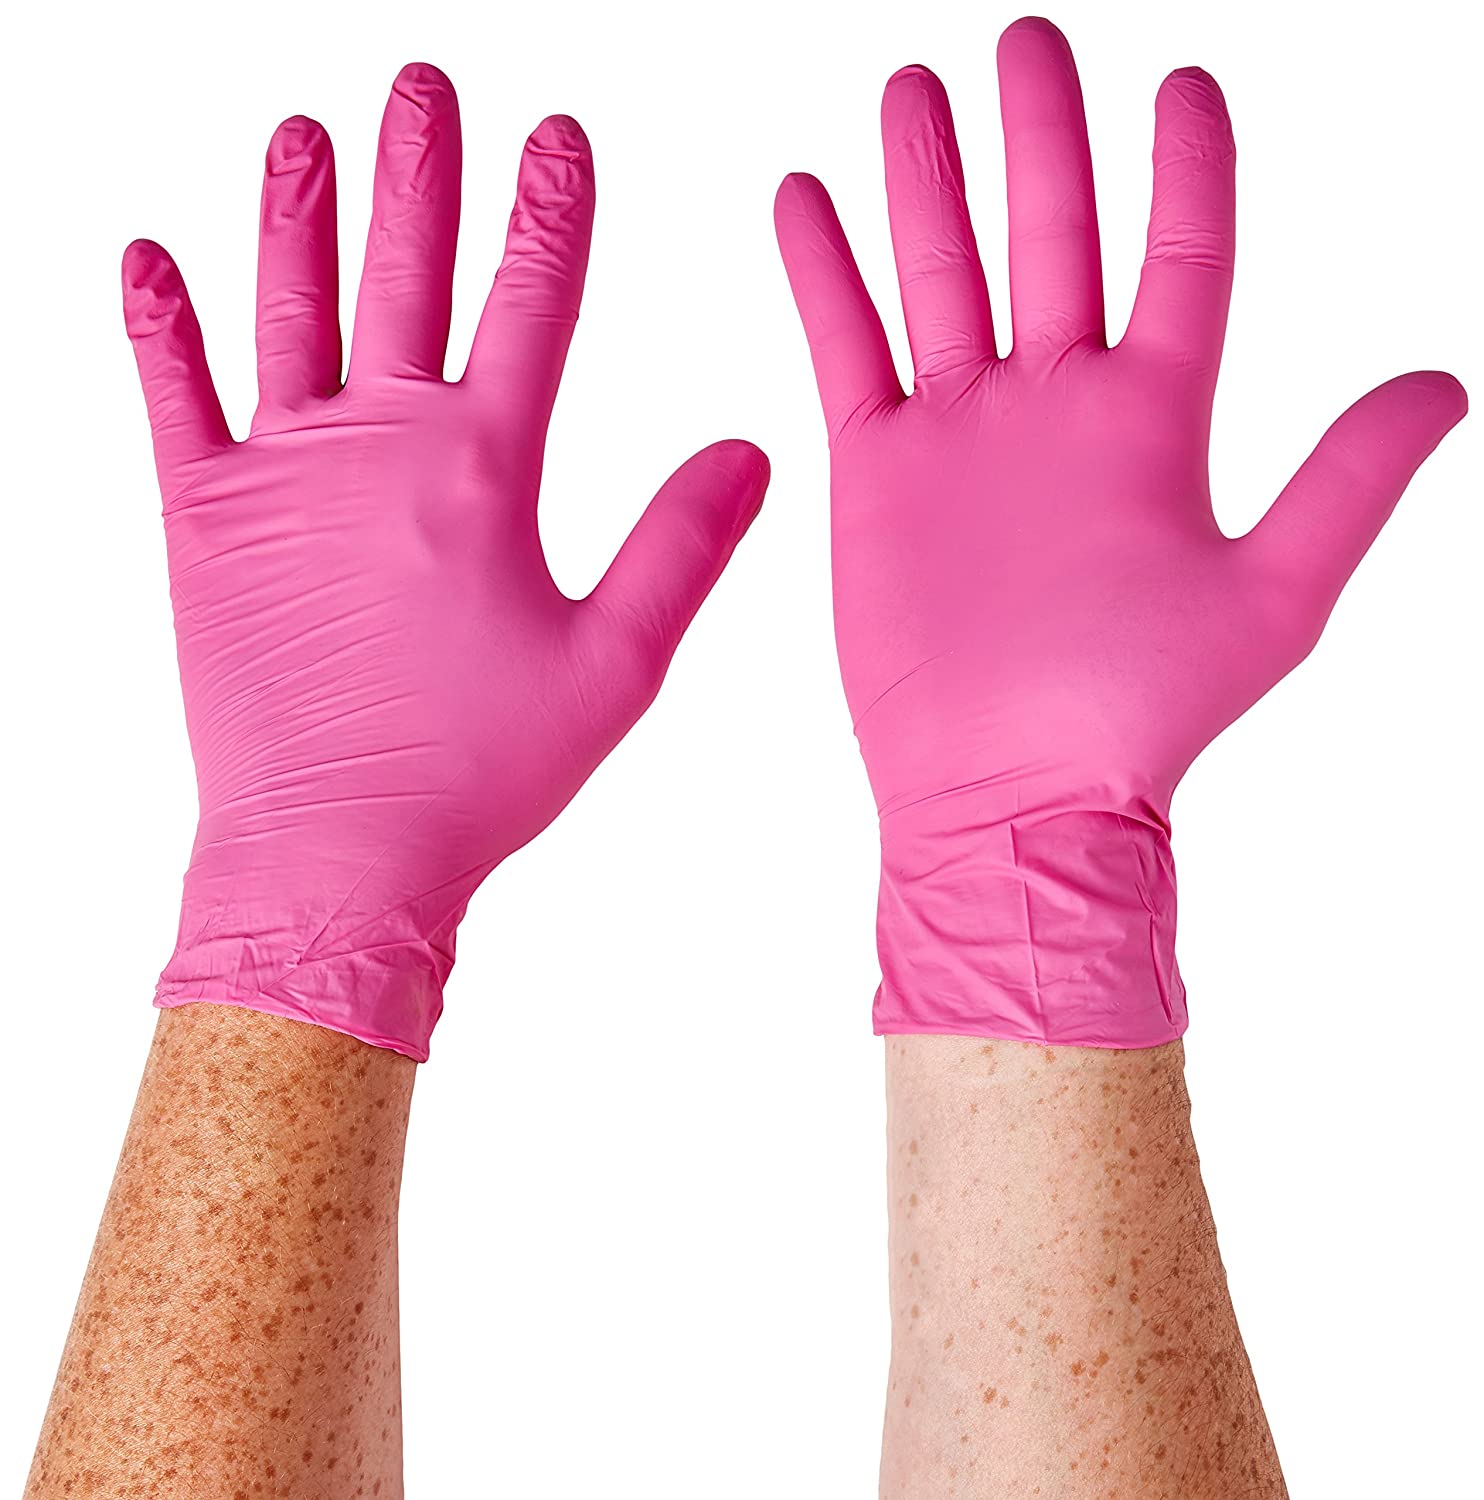 Aurelia SUPL78887 Blush, Nitrile Gloves, Size: Box of 200, 9.44' Height, 2.75' Wide, 4.72' Length, Nitrile, Medium, Pink (Pack of 200) 9.44 Height 2.75 Wide 4.72 Length Supermax Healthcare Inc.